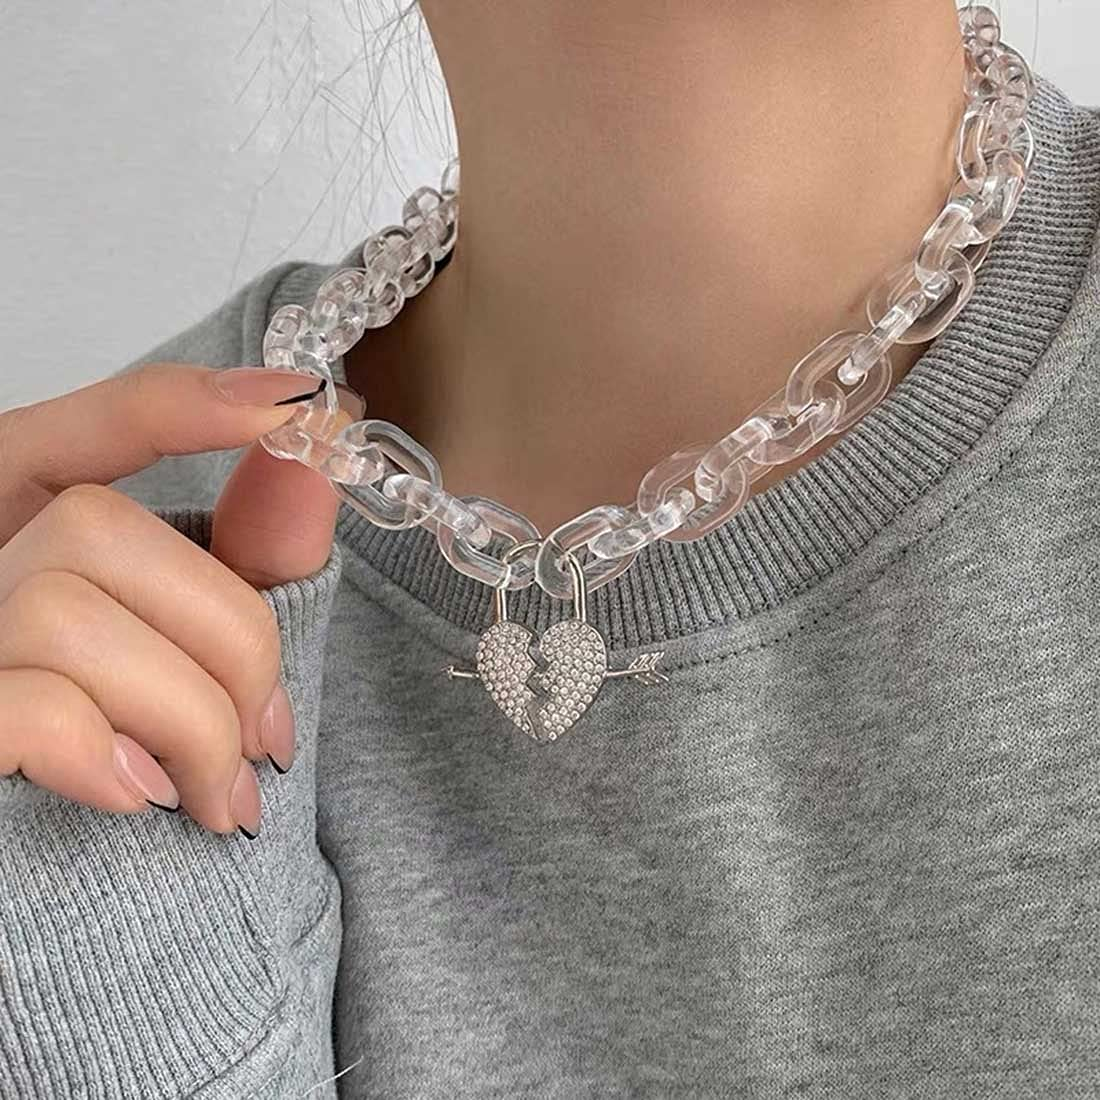 Grestal Punk Acrylic Statement Choker Necklace Chunky Love Heart Necklaces Large Choker Collar Delicate Jewelry Adjustable for Women